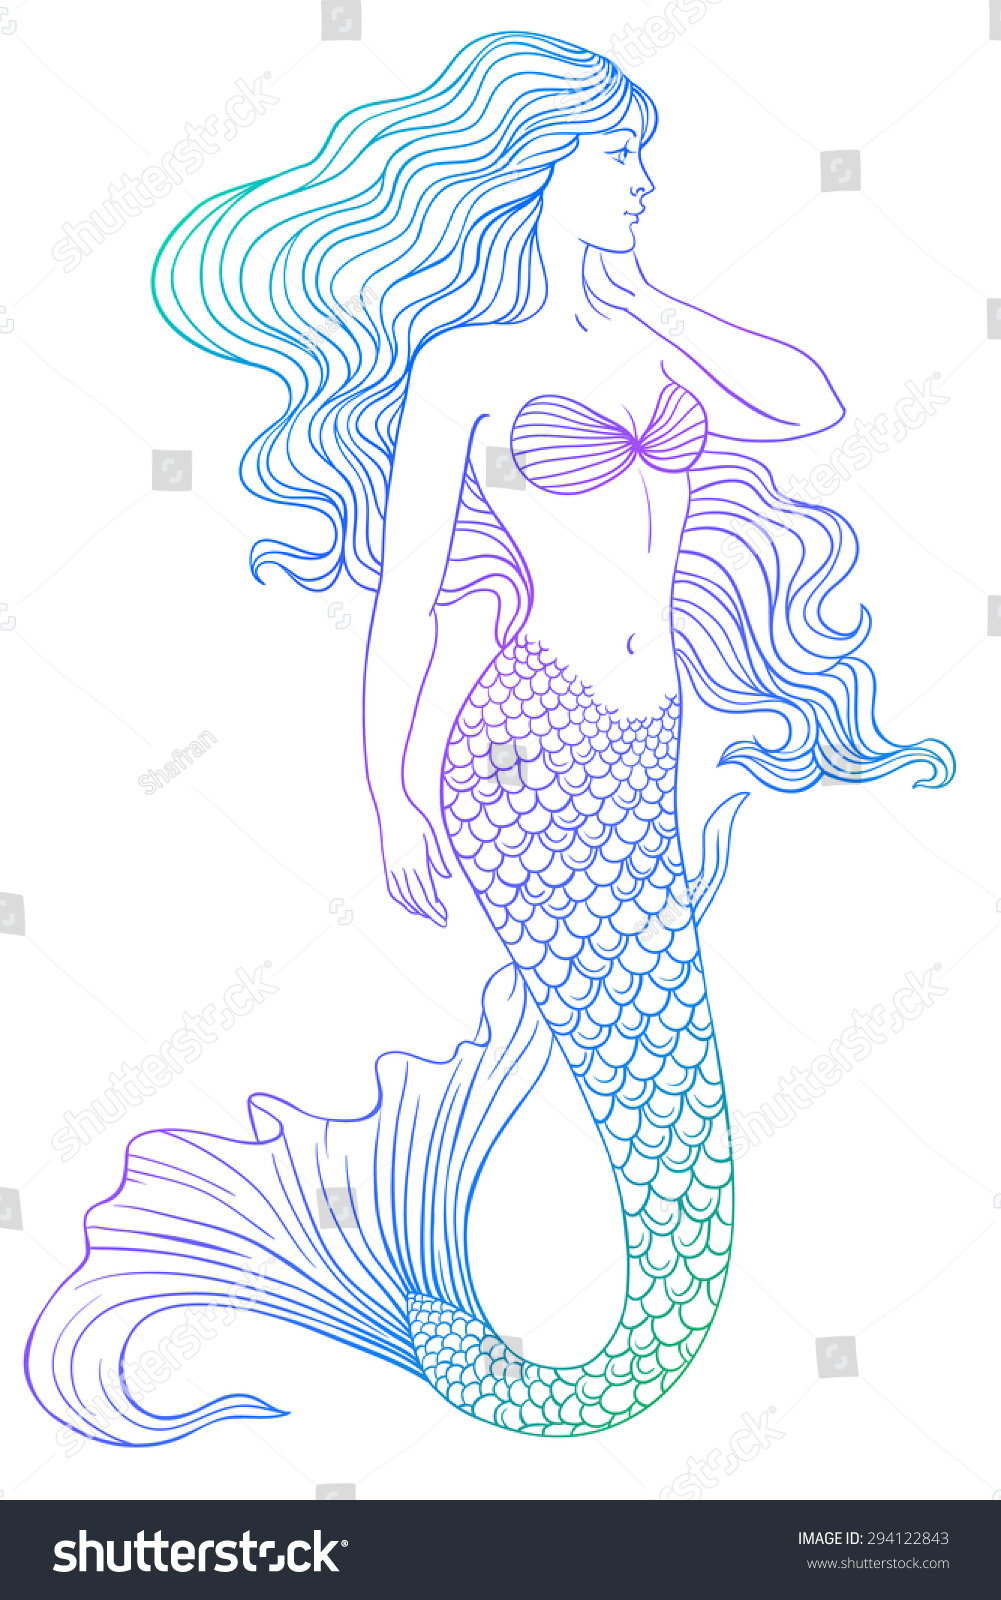 Image Gallery Mermaid Outline